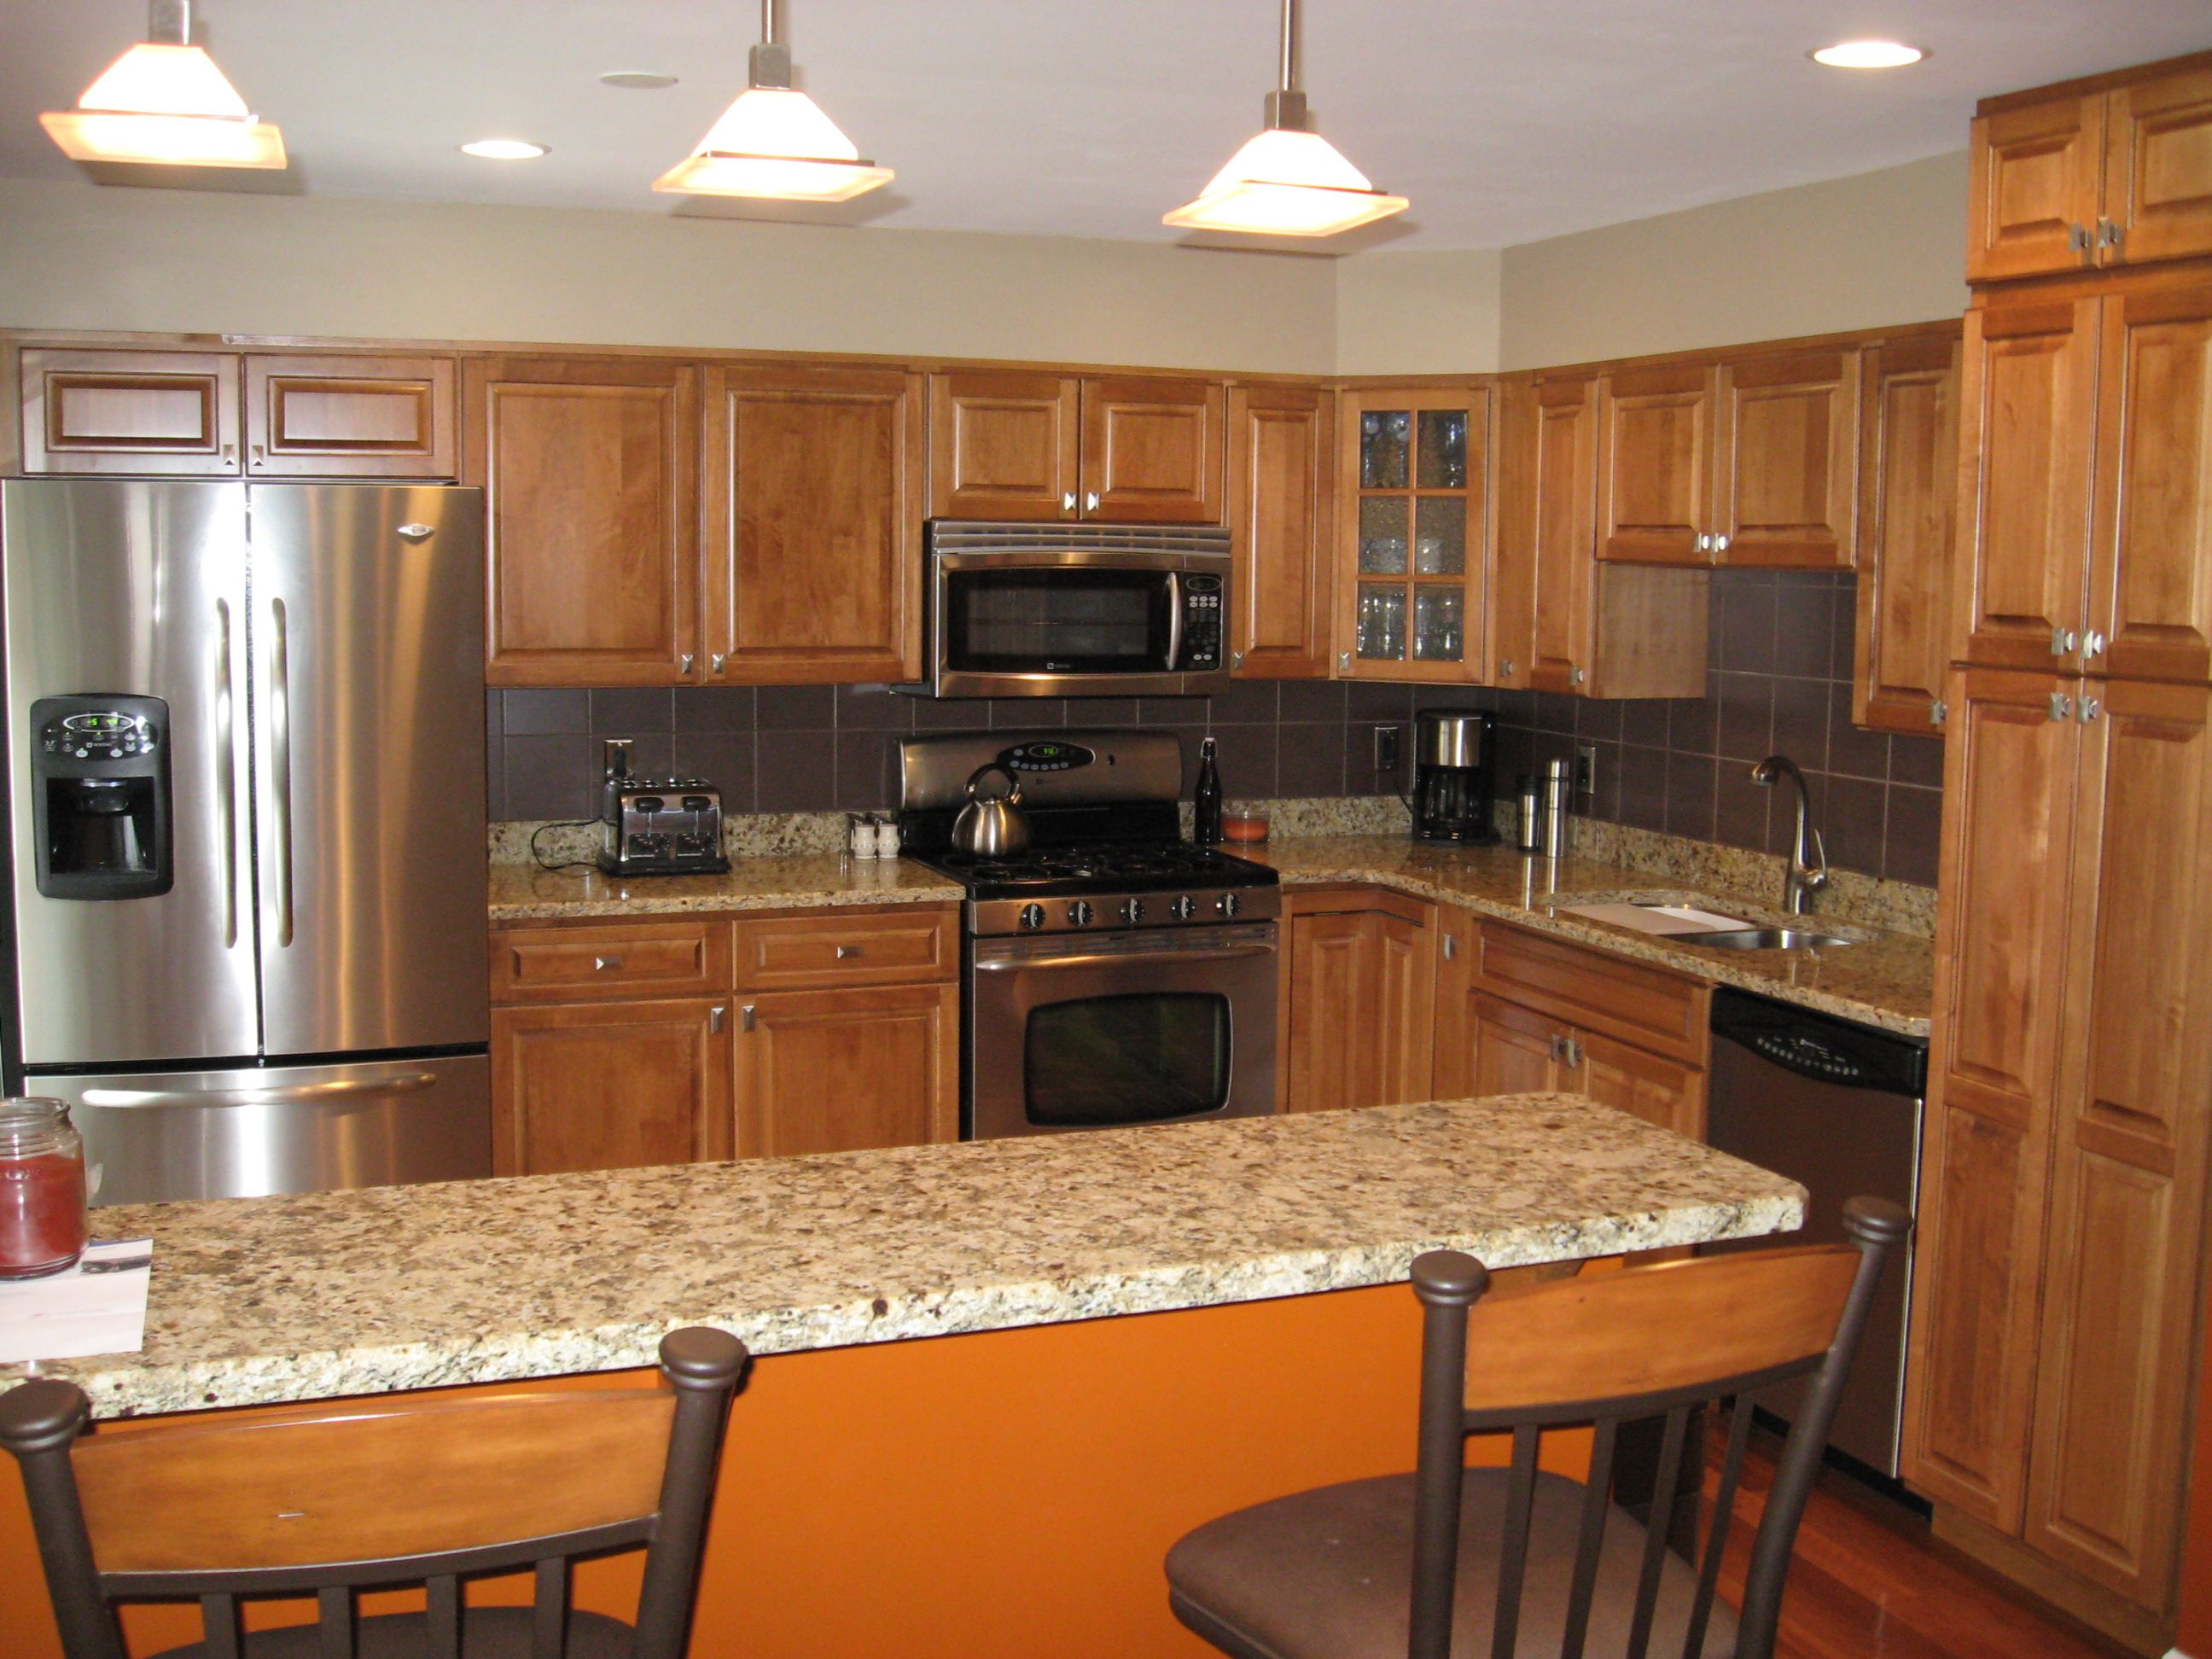 Best ideas about Remodeling Kitchen Ideas . Save or Pin 4 Brilliant Kitchen Remodel Ideas MidCityEast Now.